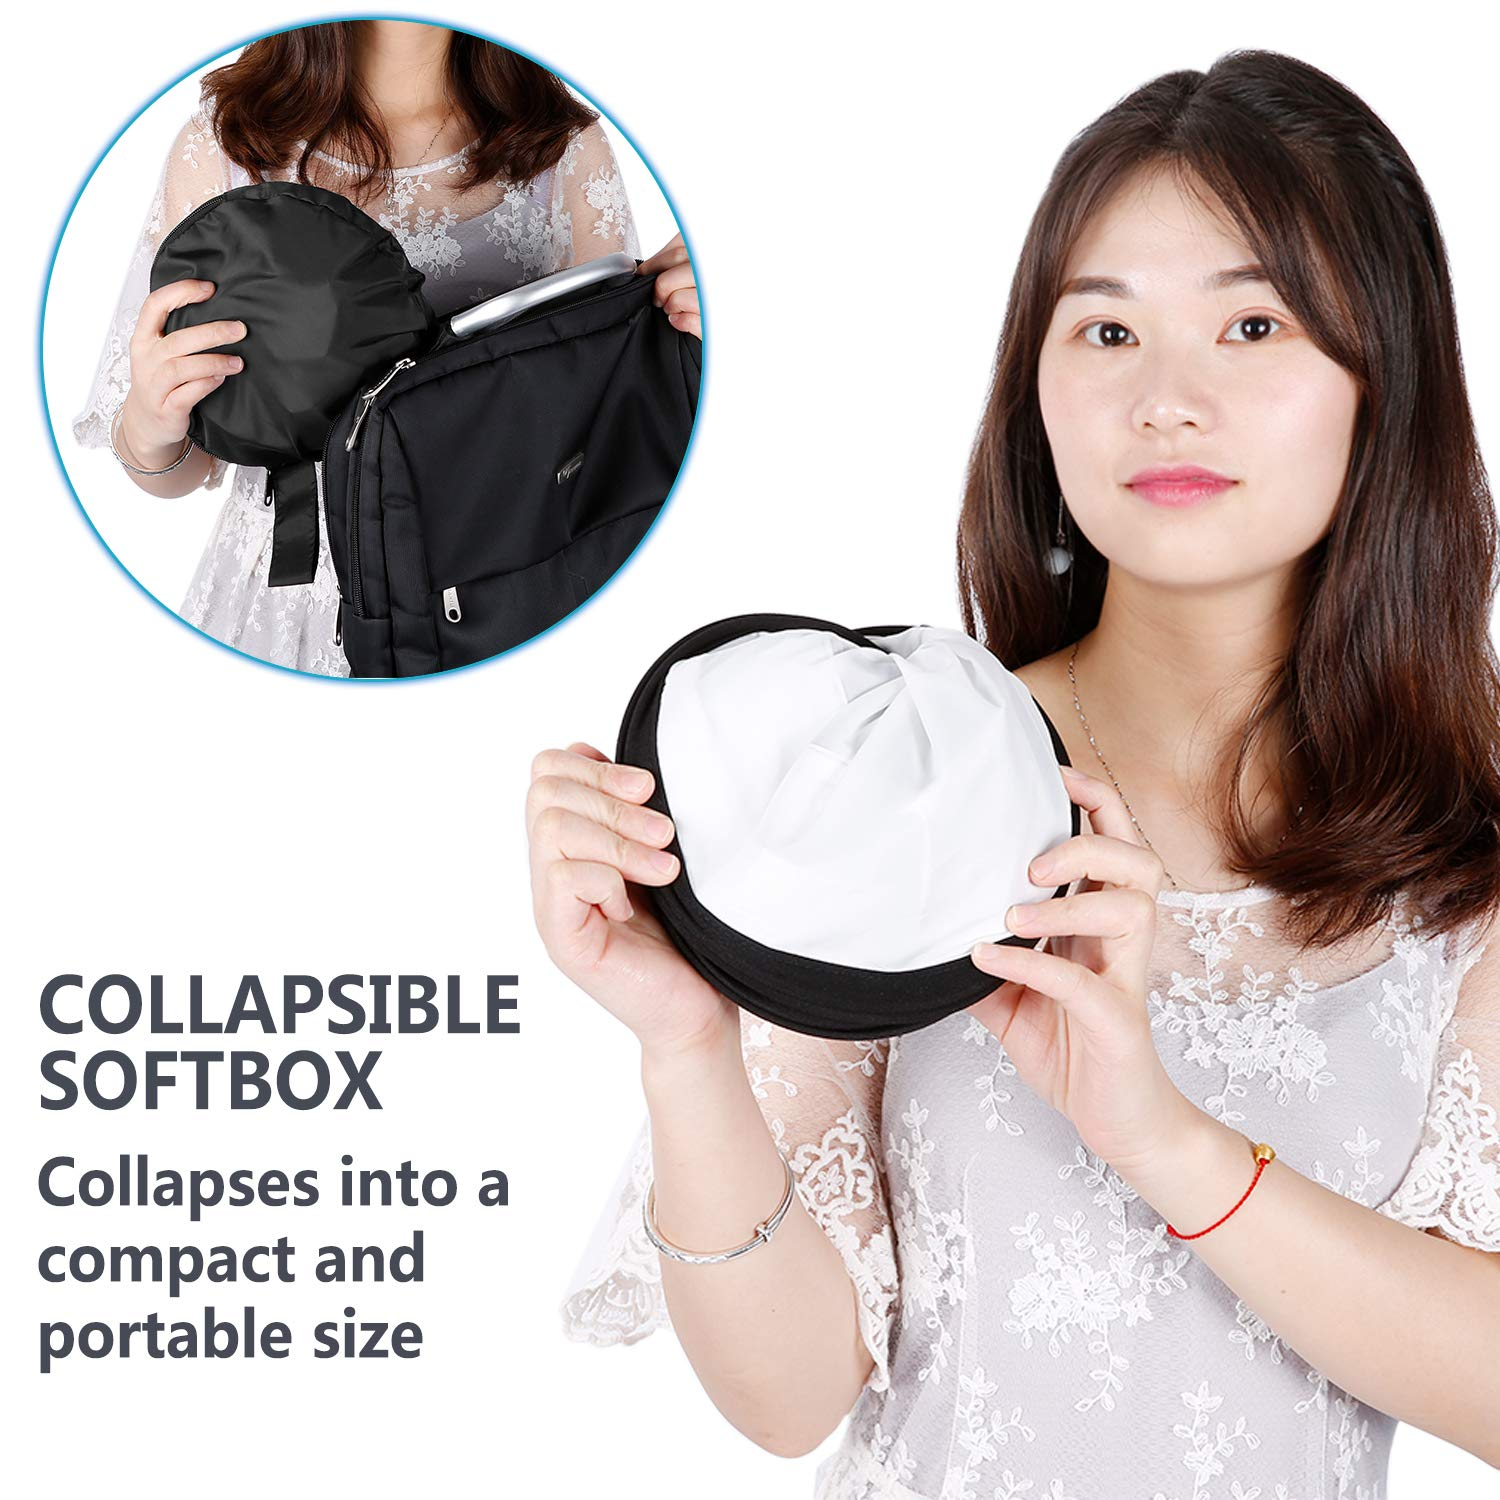 Inner 5.6x6.8 inches Outer 16x6.9 inches with Strap Attachment and Carrying Bag for Photo Studio Portrait Video Shooting Neewer Collapsible Softbox Diffuser for 660 LED Panel